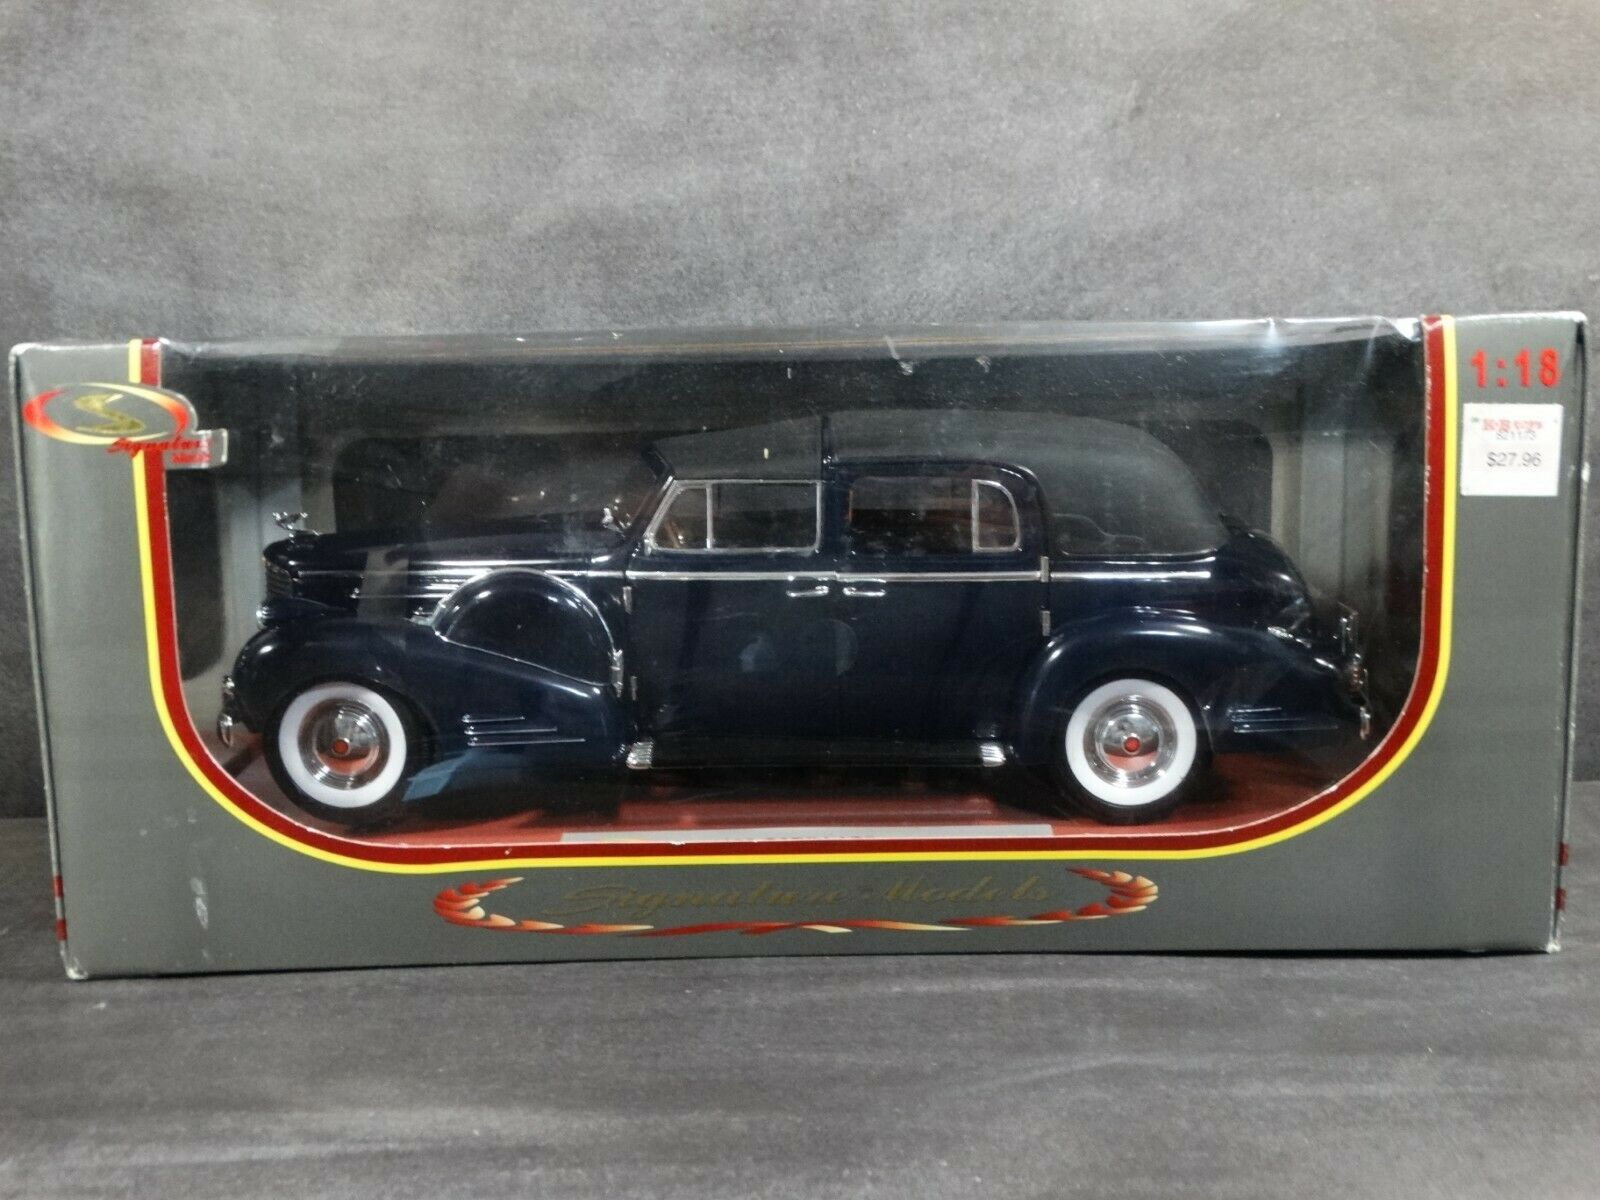 Signature Models 1938 Cadillac V-16 Fleetwood 1 18 Scale Diecast Model bluee Car